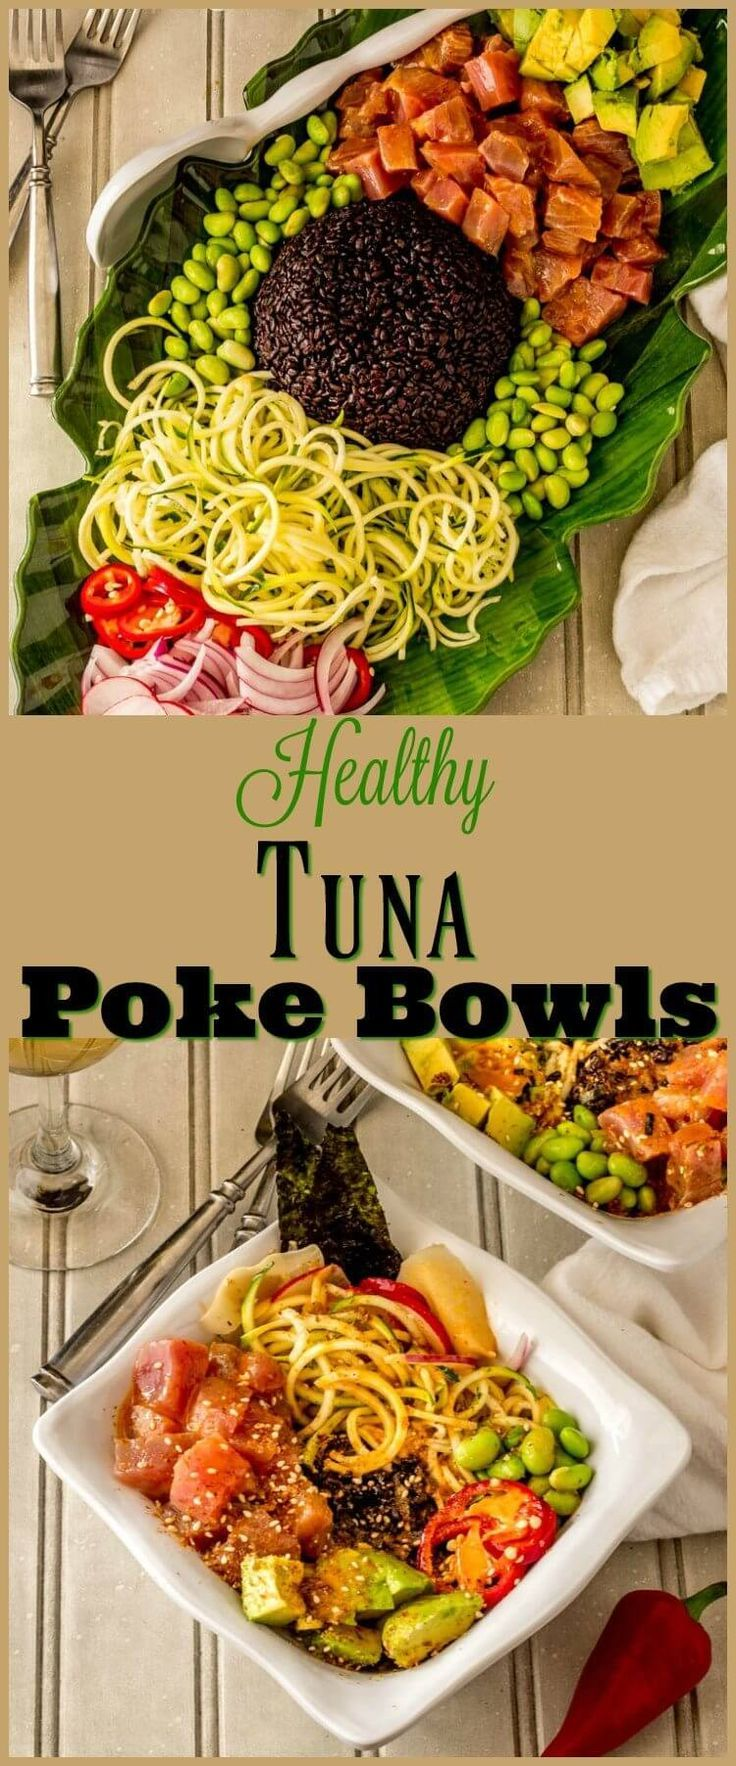 Healthy Tuna Poke Bowl - Chunks of succulent raw ahi tuna dressed up with a light sesame ginger vinaigrette star in my customizable Healthy Tuna Poke Bowl... This nutritious powerhouse dish is bursting with flavor, and so quick and easy to make! fresh tuna recipes | poke bowl recipe | main dish salads